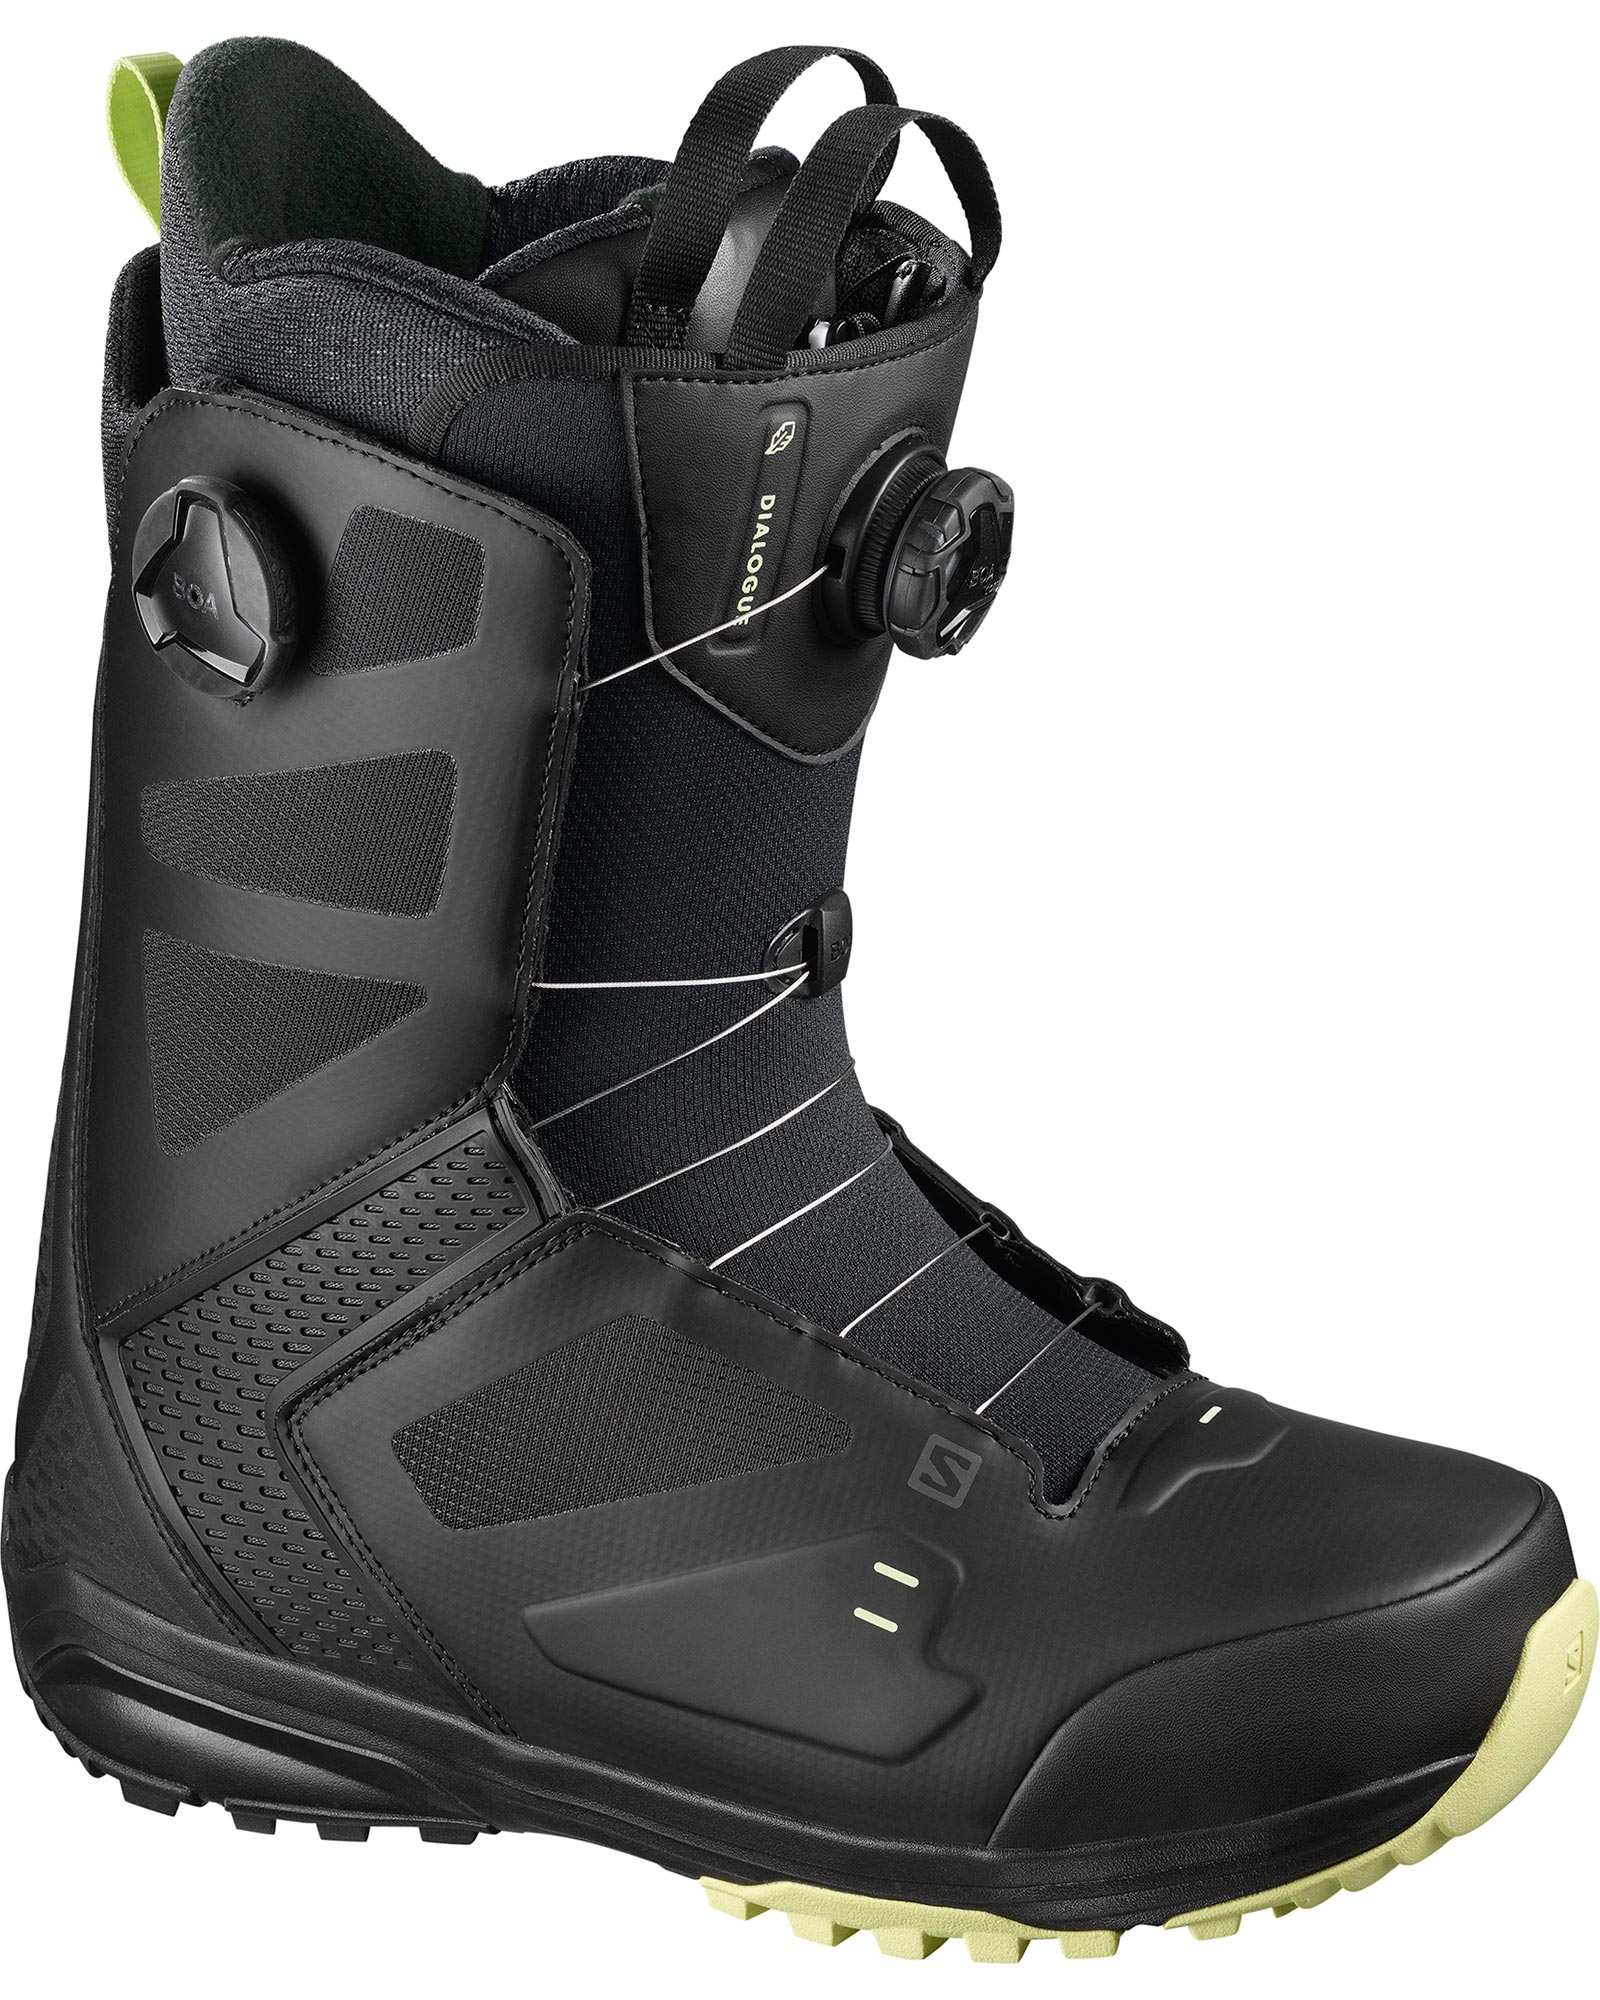 Salomon Dialogue Focus Double BOA Men's Snowboard Boots 2021 0